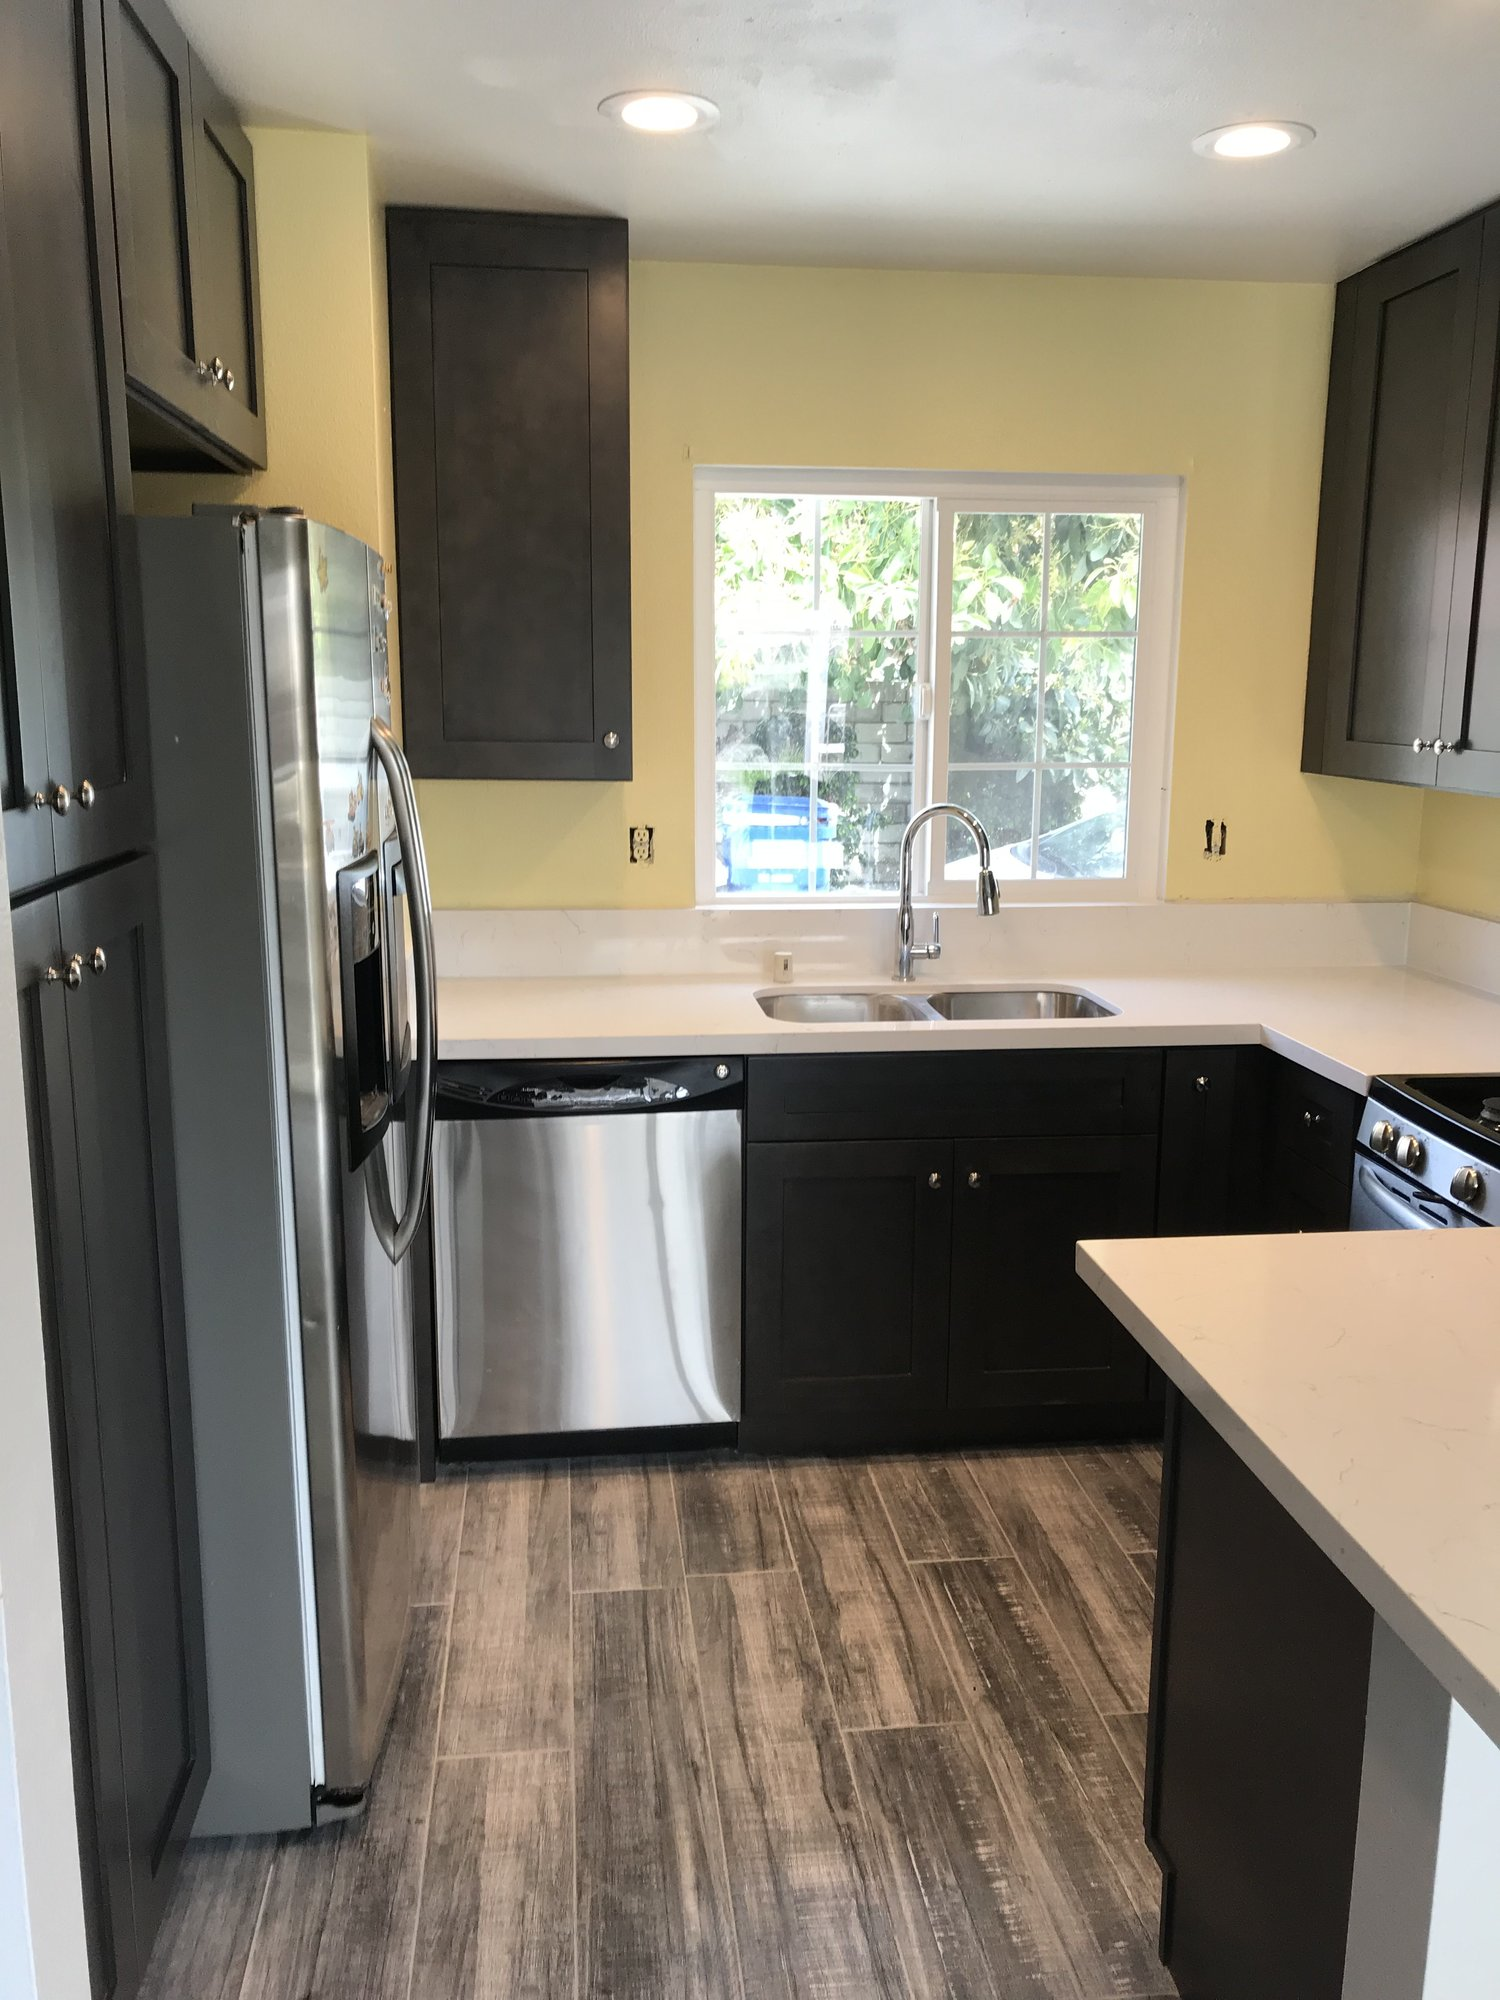 Remodeling Small Kitchen.jpg